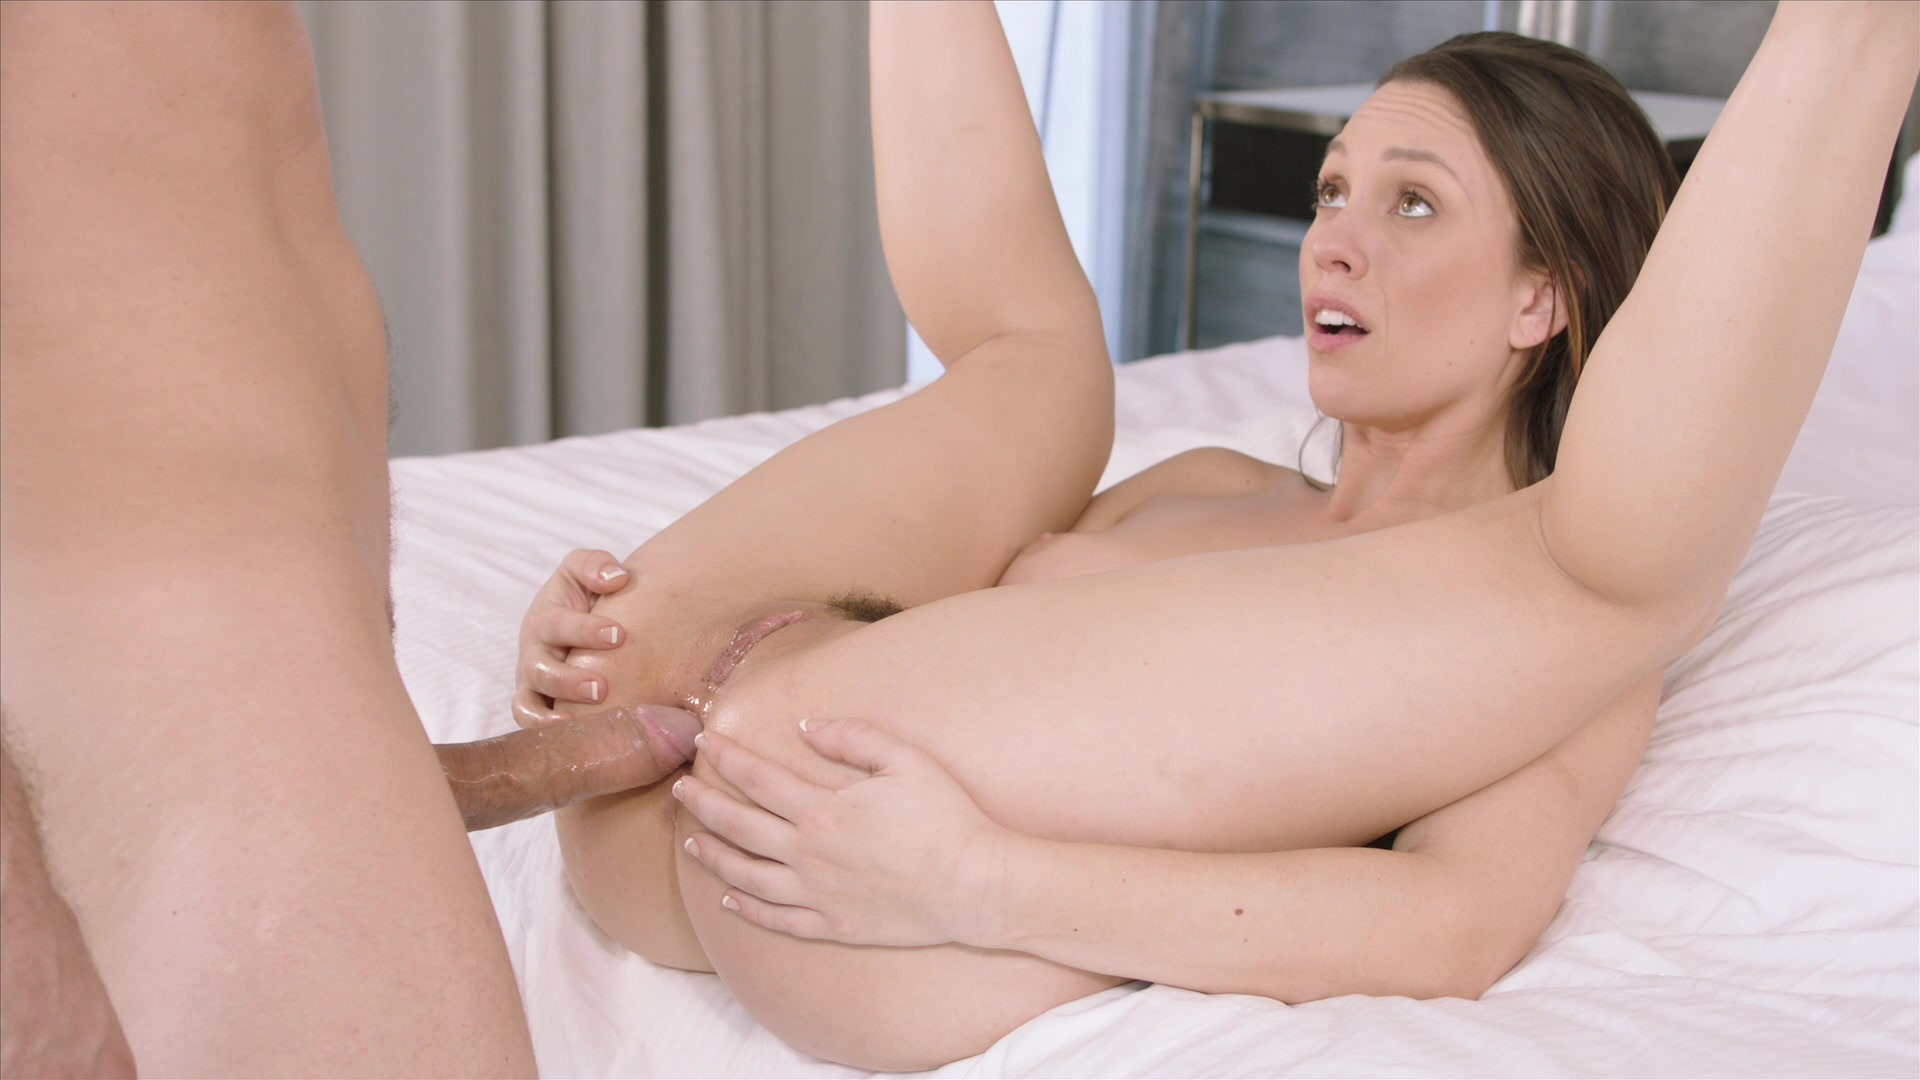 Femjoy first anal, young girls webcams